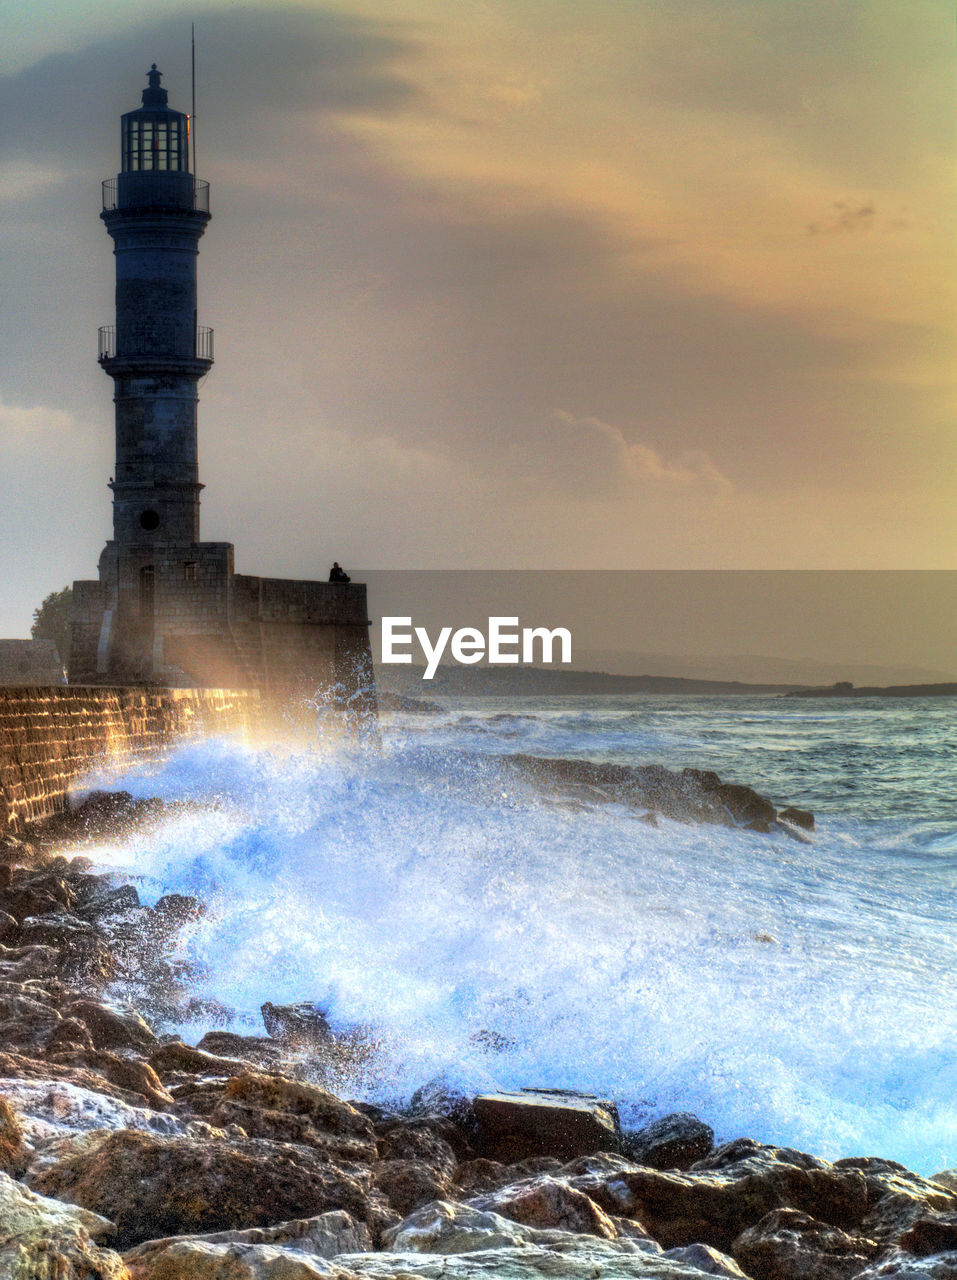 water, sea, sky, built structure, tower, architecture, motion, cloud - sky, building exterior, horizon over water, horizon, beauty in nature, wave, lighthouse, nature, beach, guidance, land, scenics - nature, no people, power in nature, breaking, outdoors, hitting